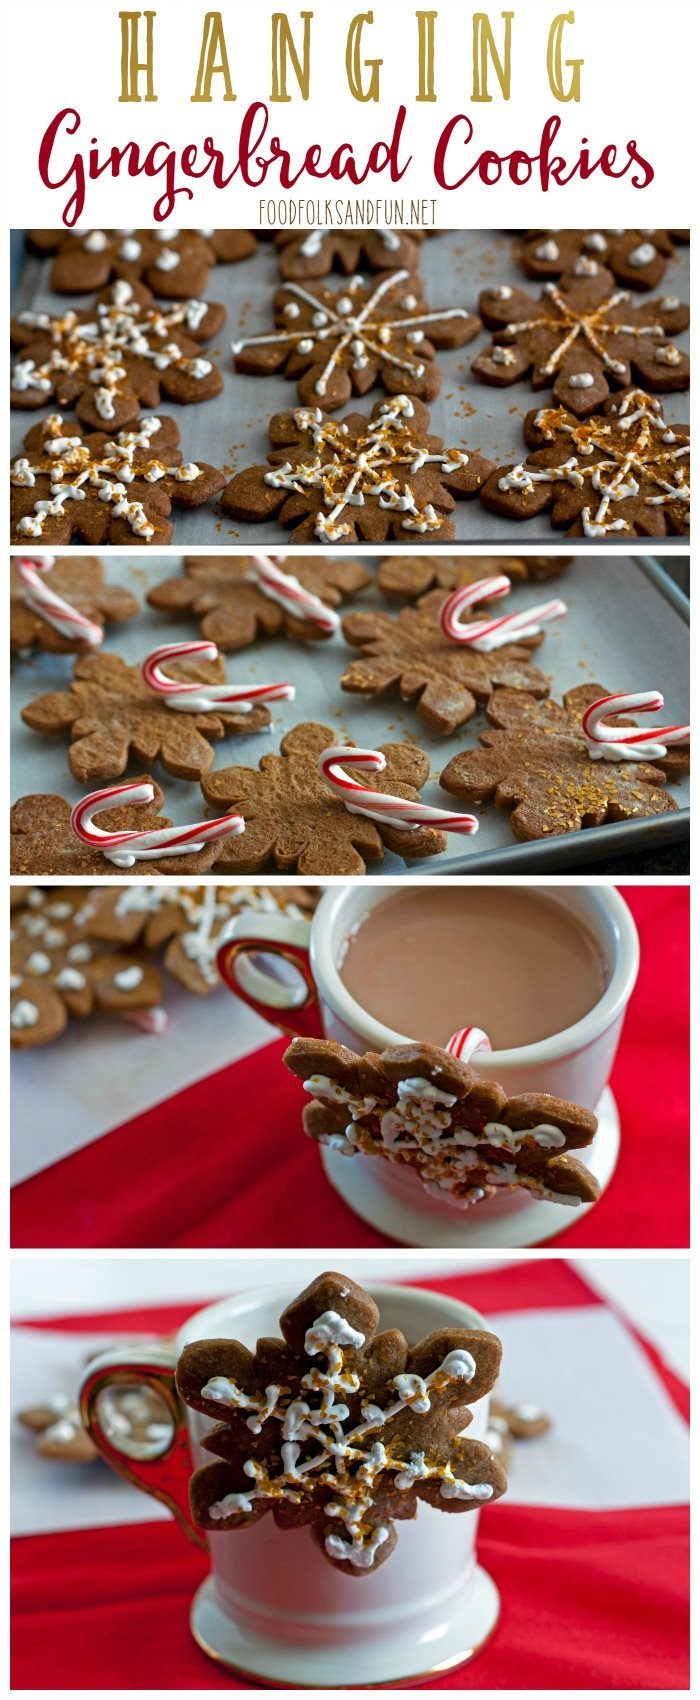 Picture collage of hanging gingerbread cookies for Pinterest.